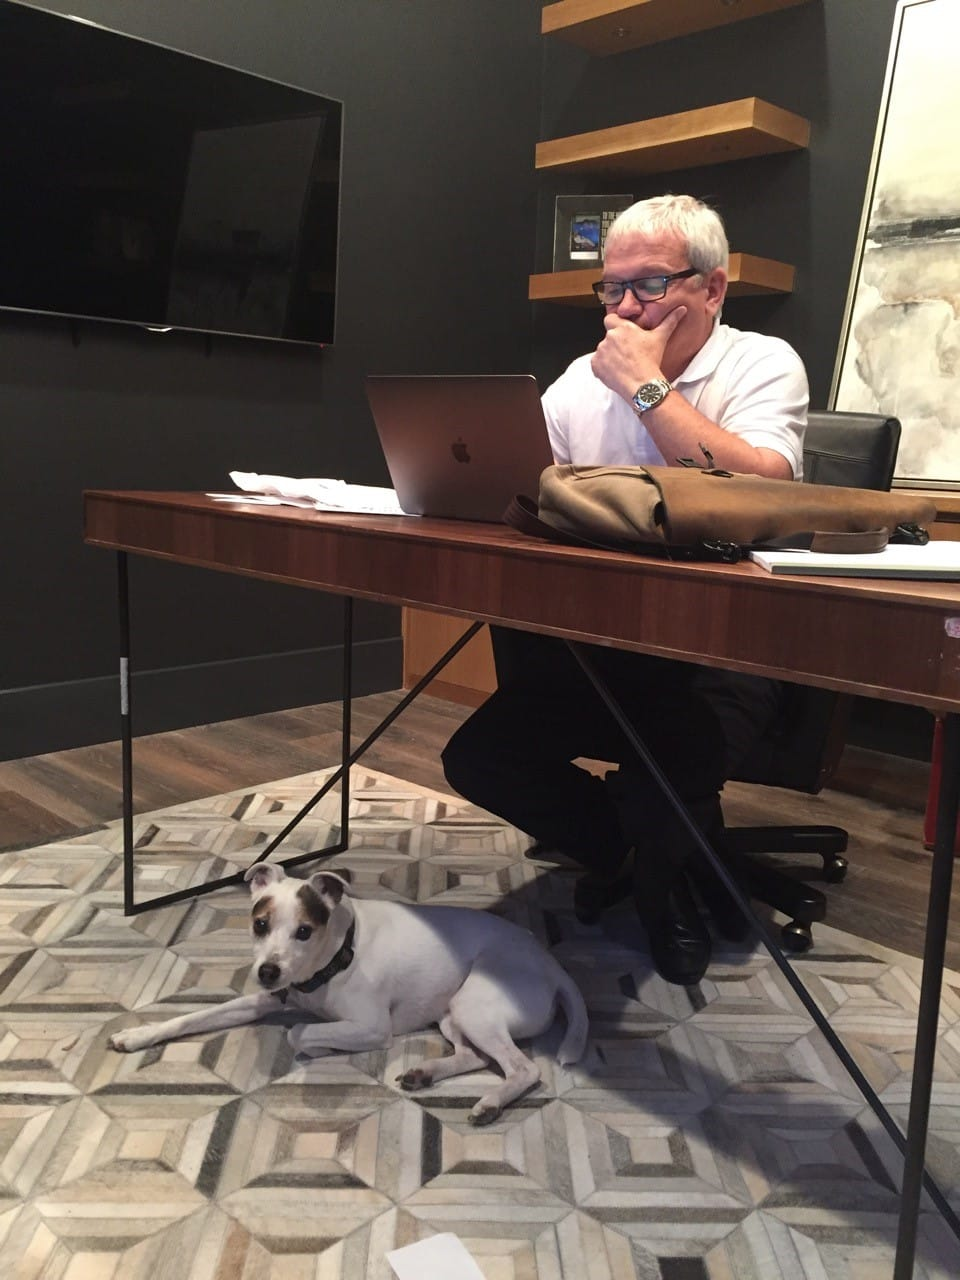 Mike with his dog in his home office.